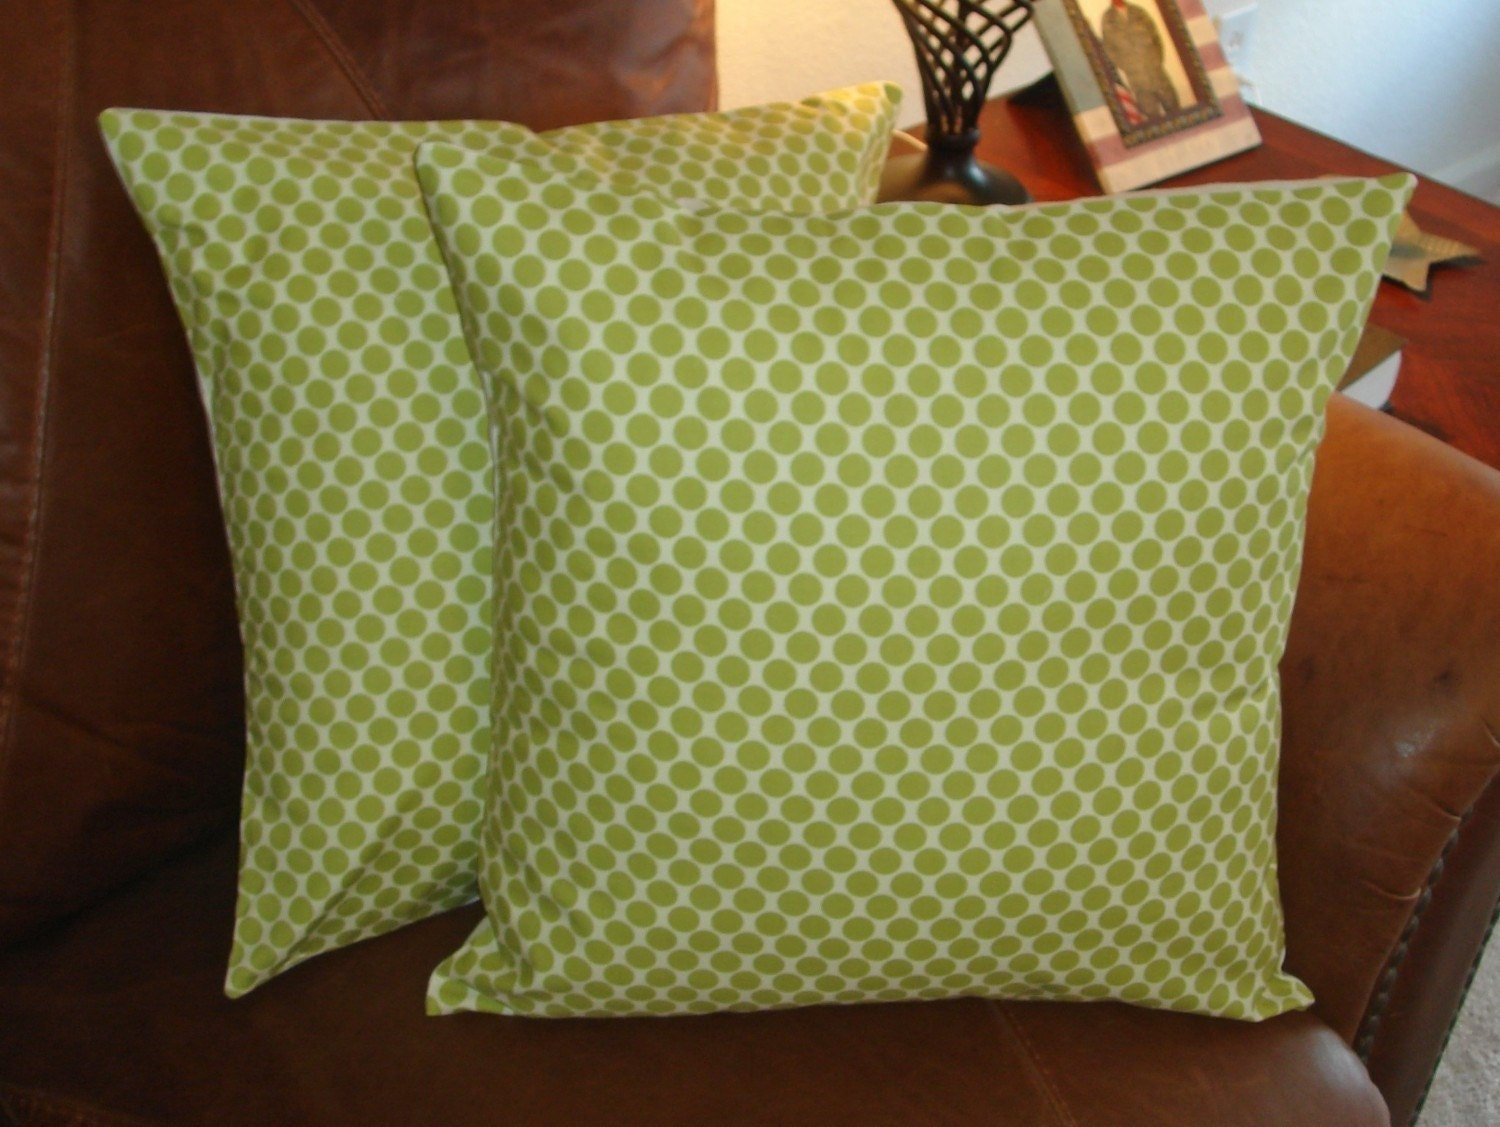 Throw Pillow removable cover 16x16 Set of 2 sewn with Amy Butler's Full Moon Lime